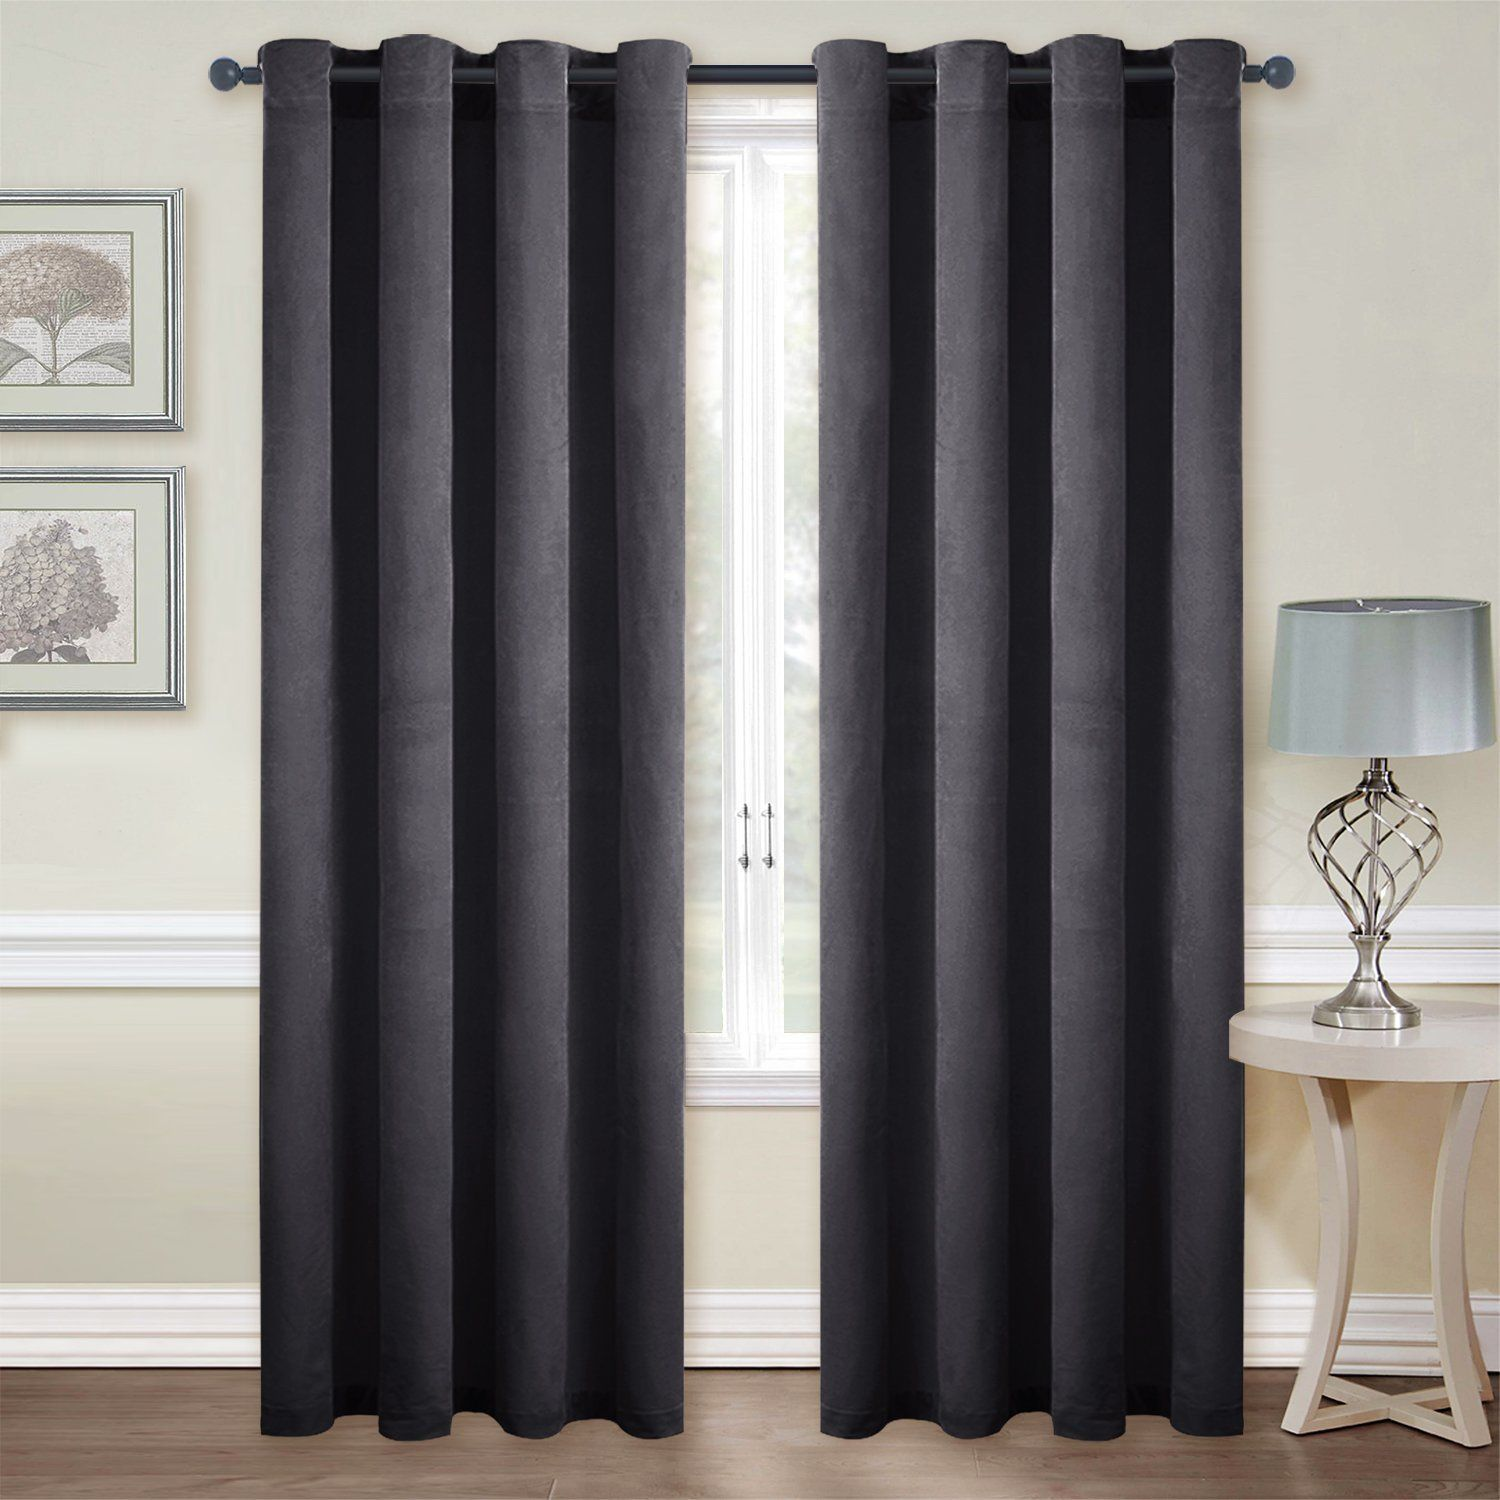 Amazon.com: Thermal Insulated Velvet Blackout Curtains